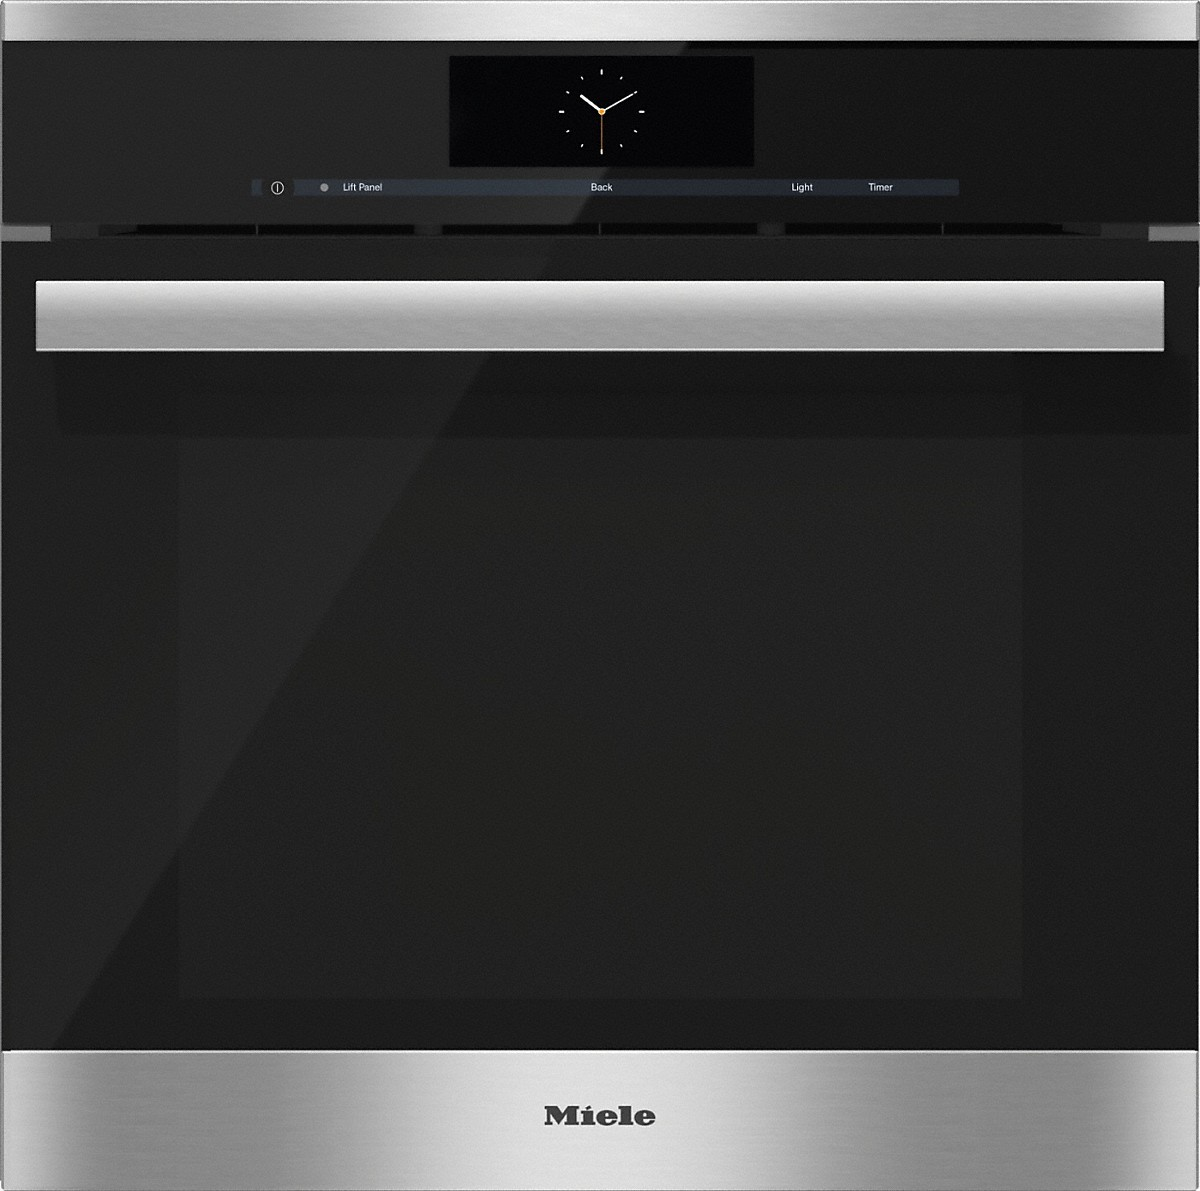 miele dgc 6865 am steam oven with full fledged oven function and xxl cavity. Black Bedroom Furniture Sets. Home Design Ideas